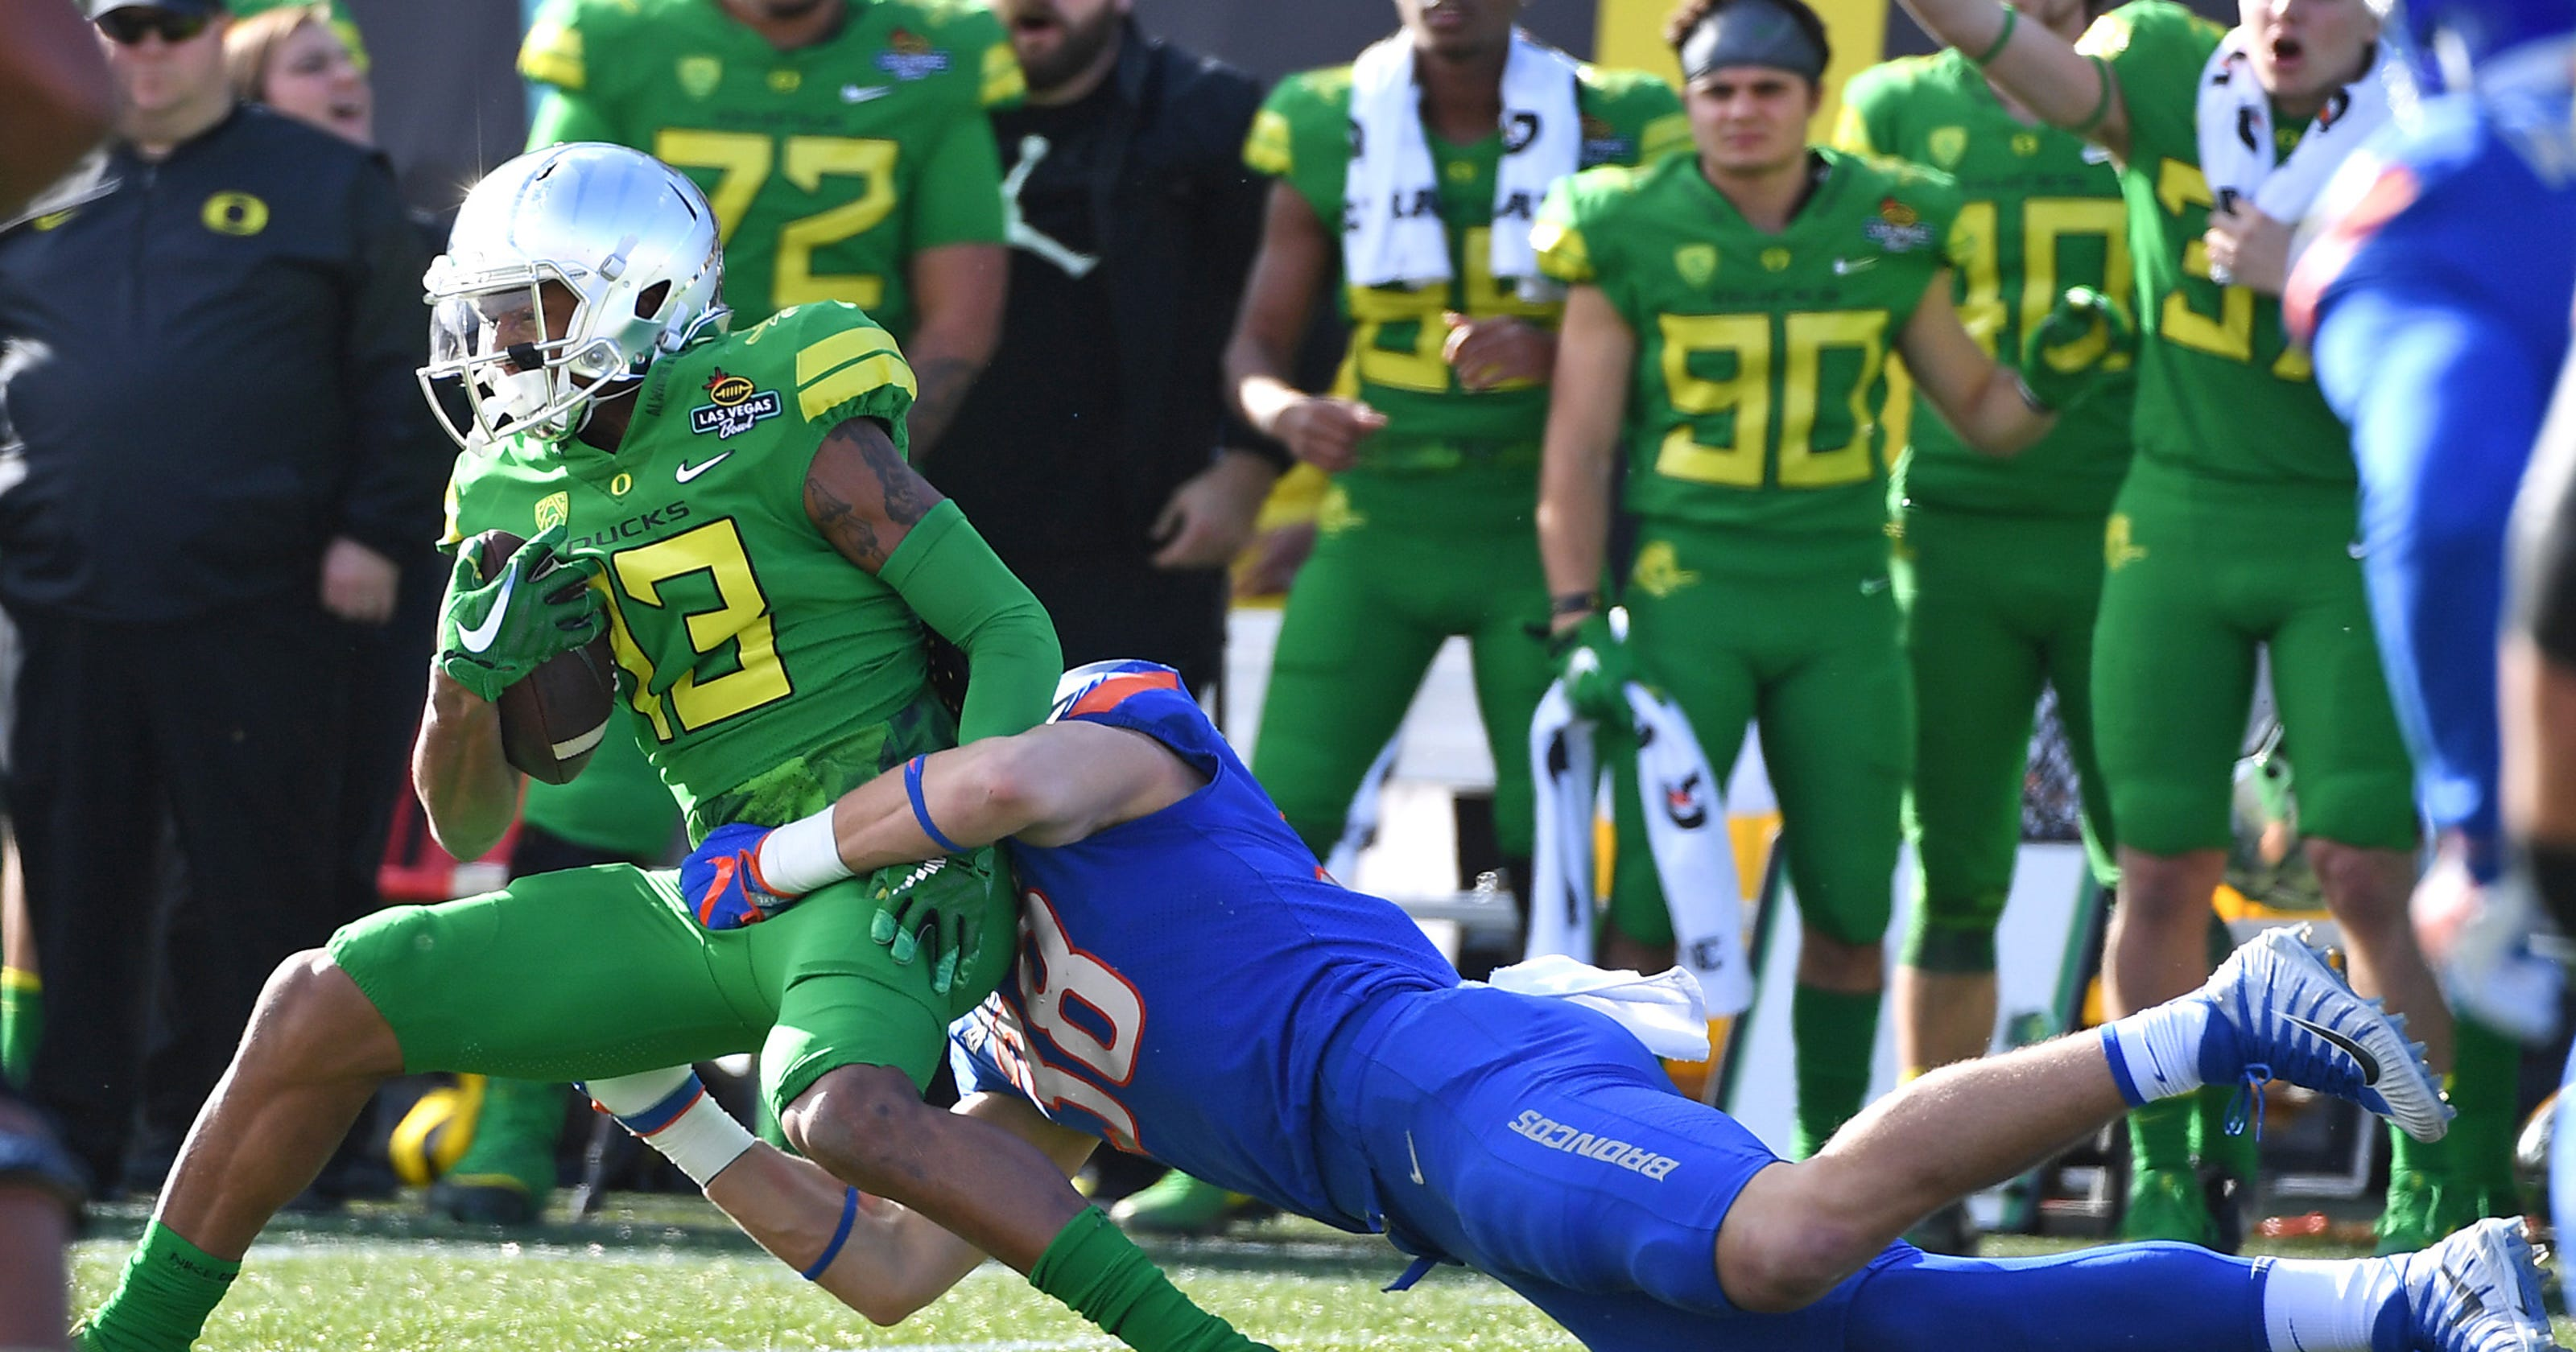 5 things to know about Dallas Cowboys No. 19 overall pick Leighton Vander  Esch 152100c11